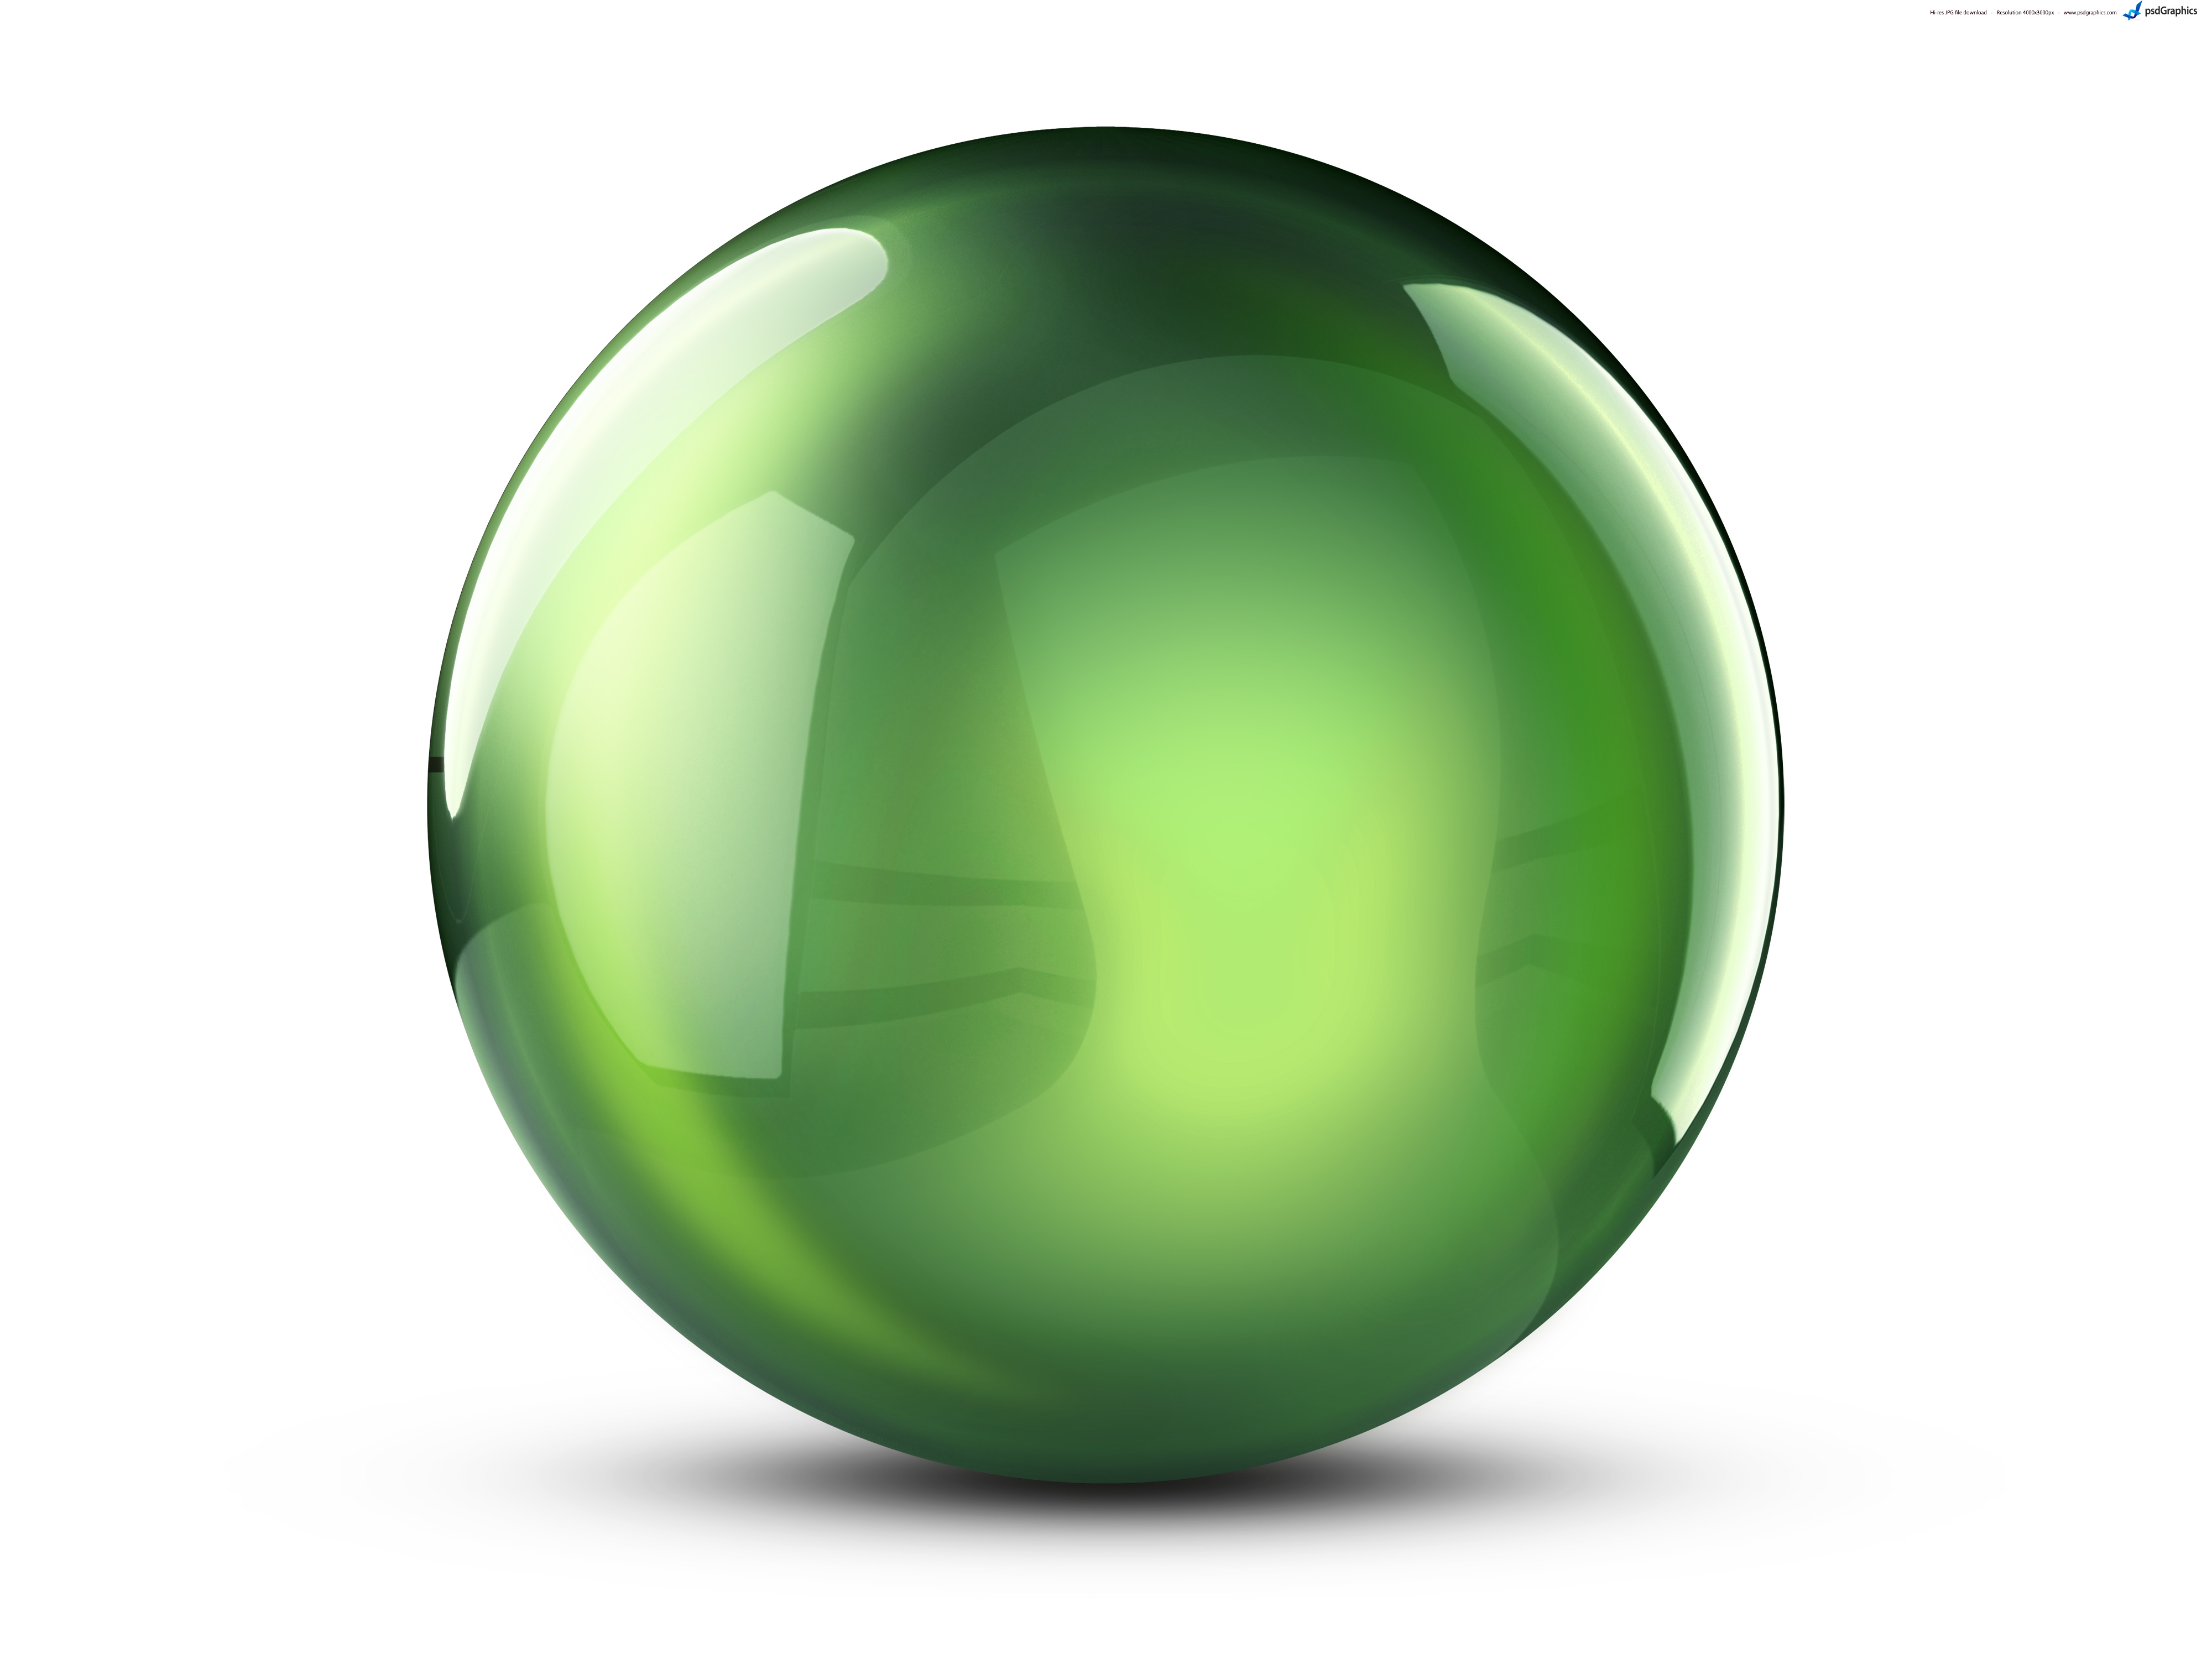 14 Green Sphere Icon.png Images